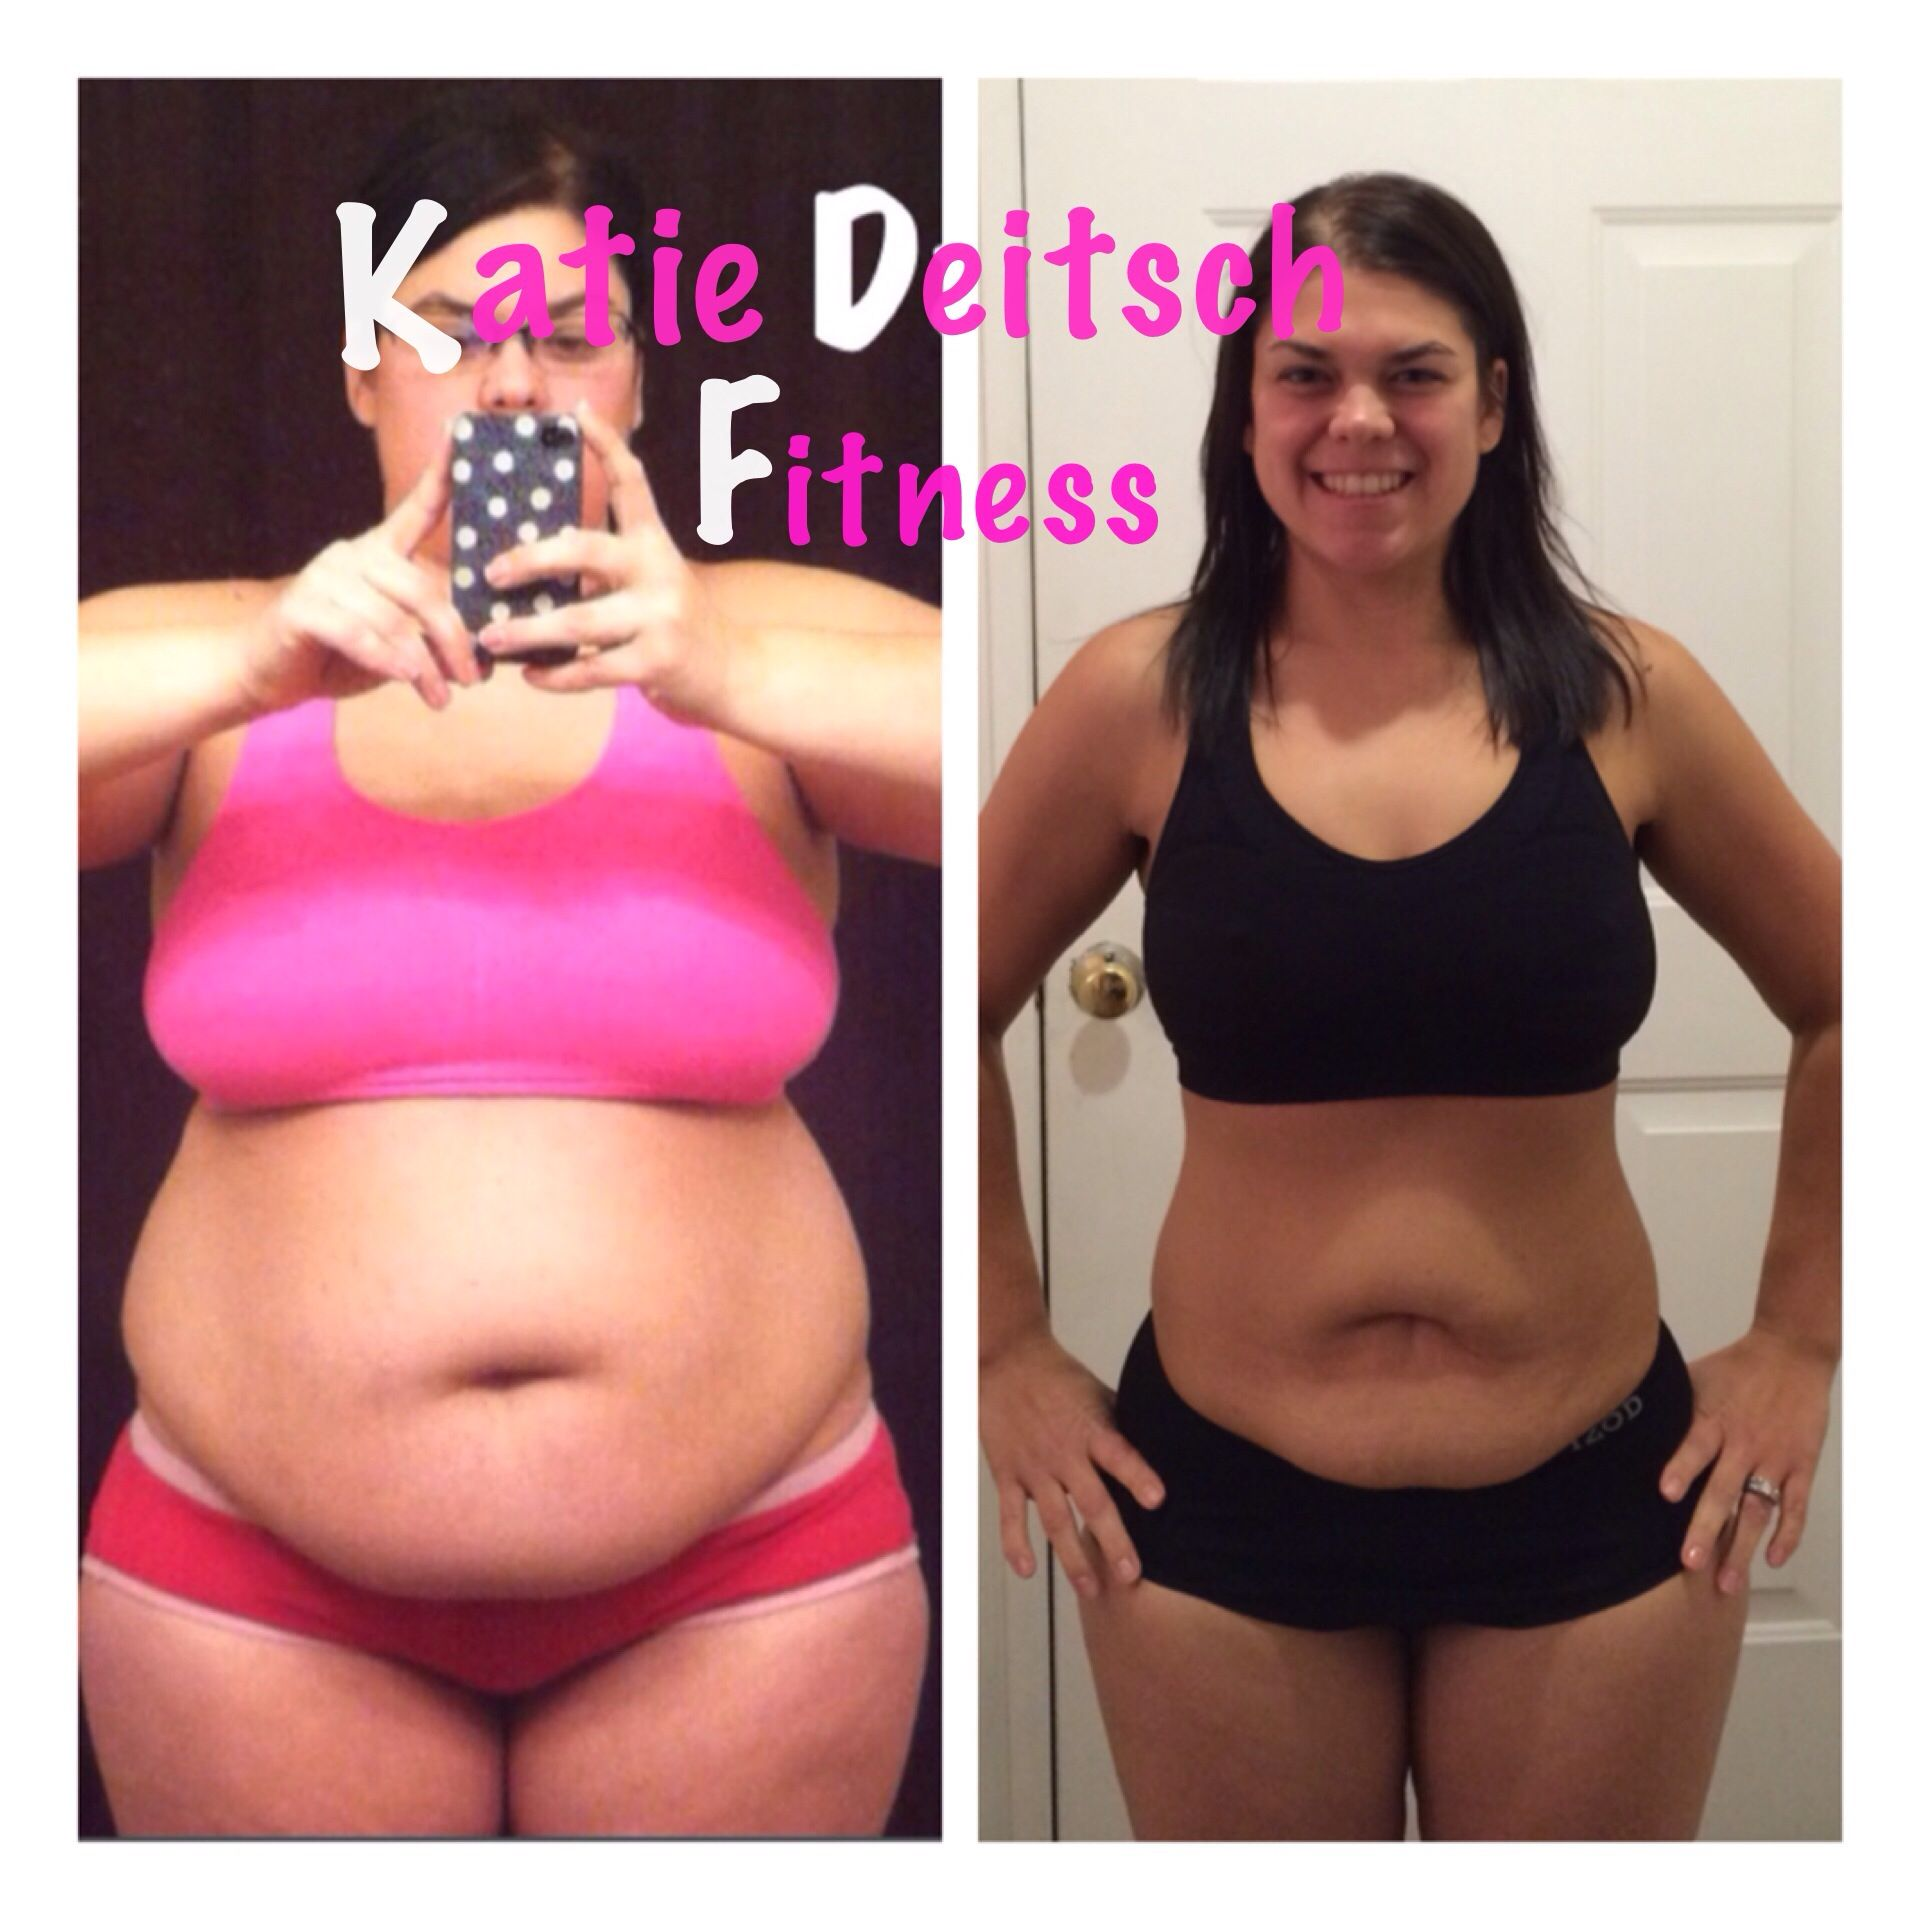 Transformation Tuesday- before and during   pic 8 months apart! From 206 lbs to 147 lbs using at home fitness programs!